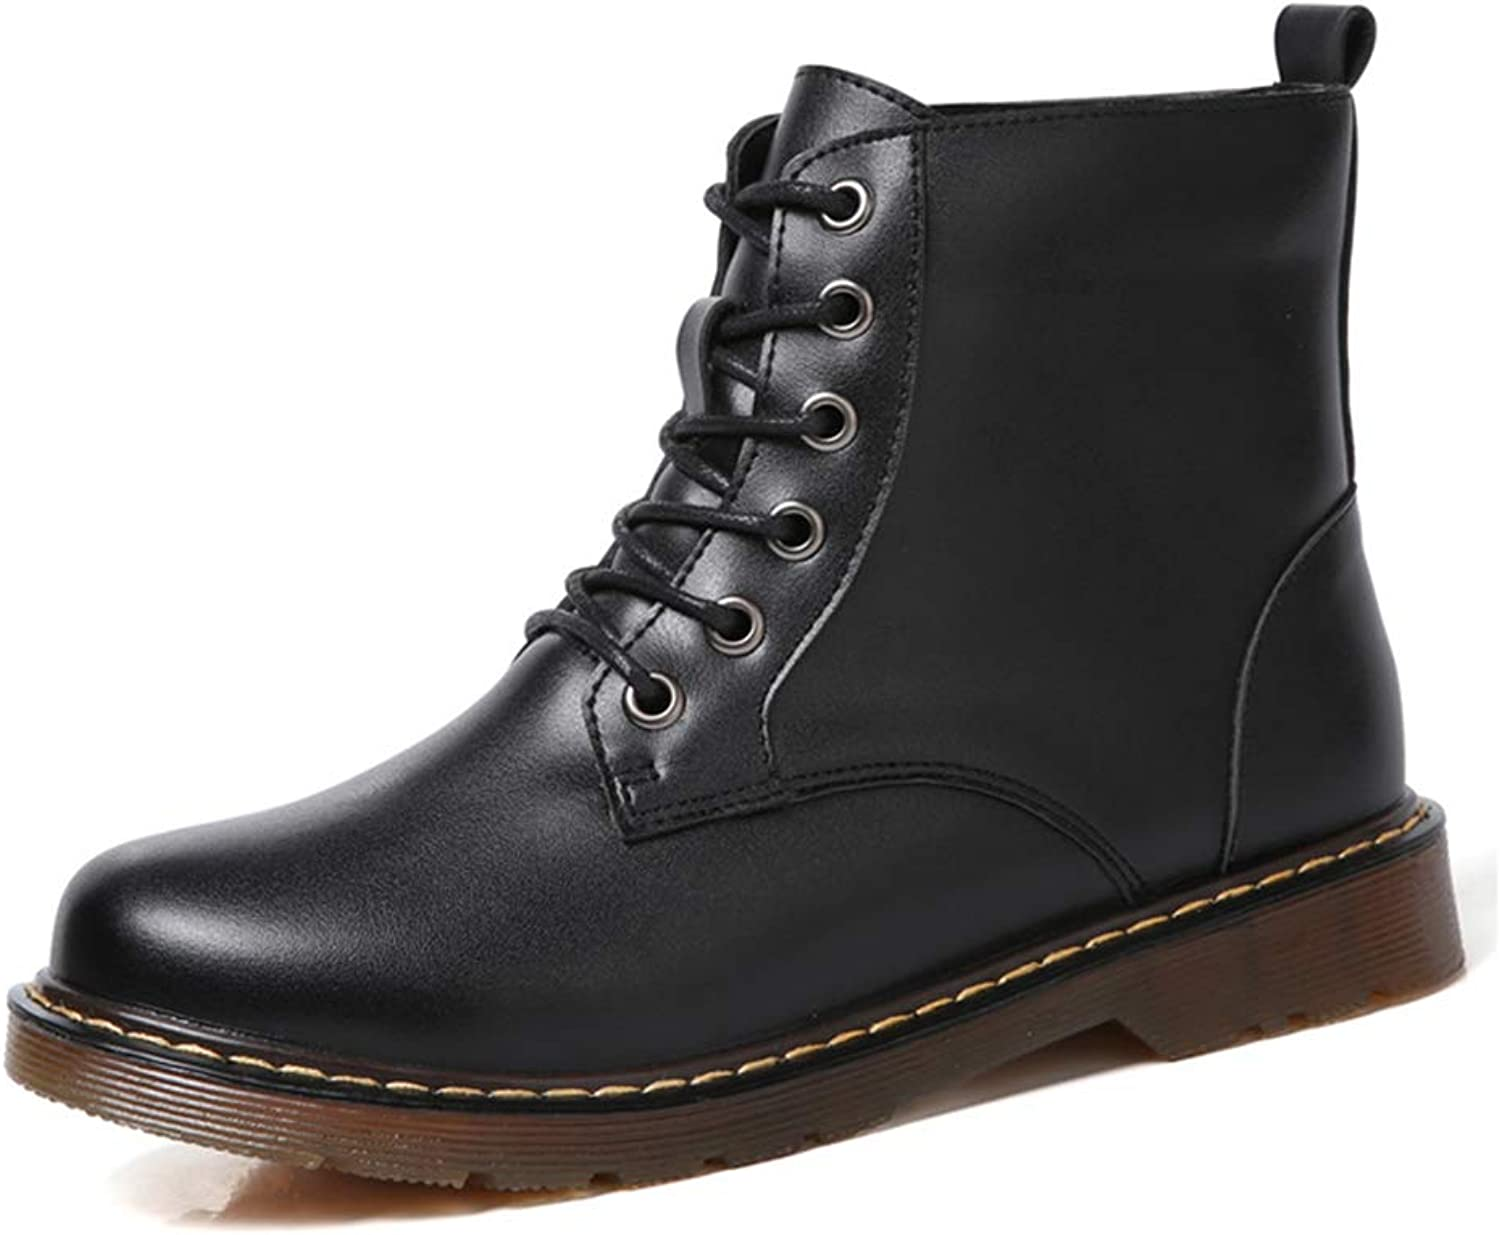 Women's Booties, Leather Plus Velvet Keep Warm Fashion Boots Ladies Fall Winter Flat Lace-up Martin Boots (color   Black, Size   39)